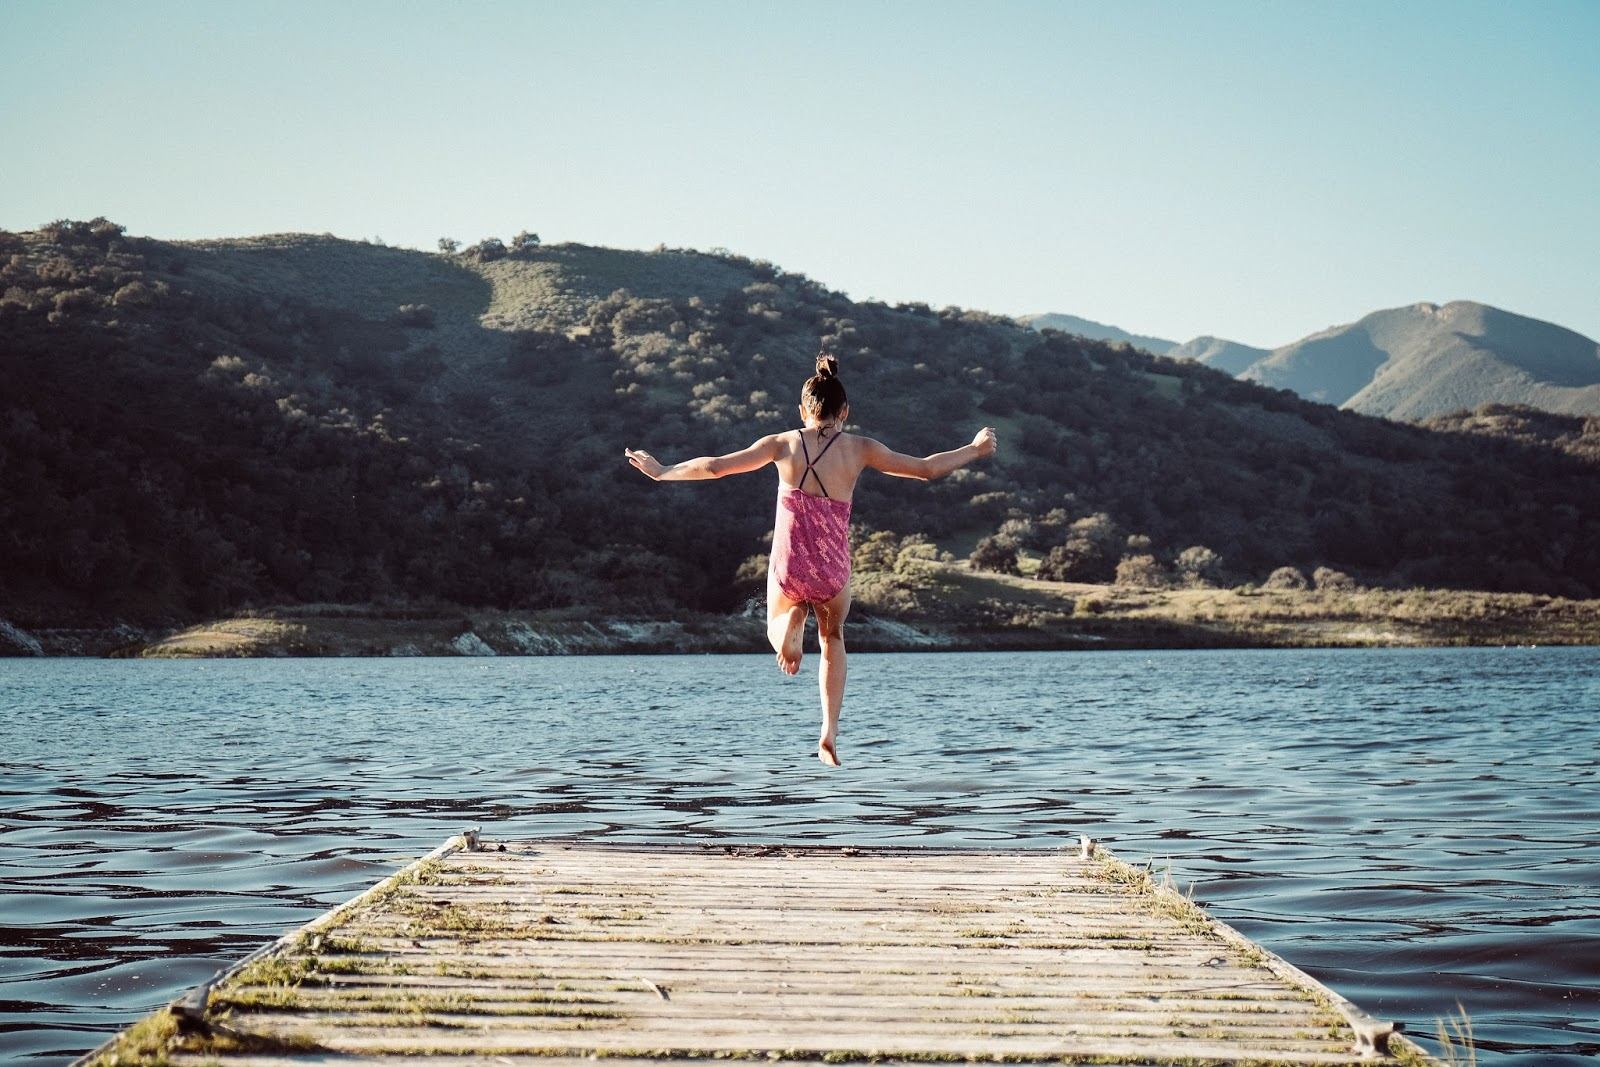 Young girl jumping into a loch